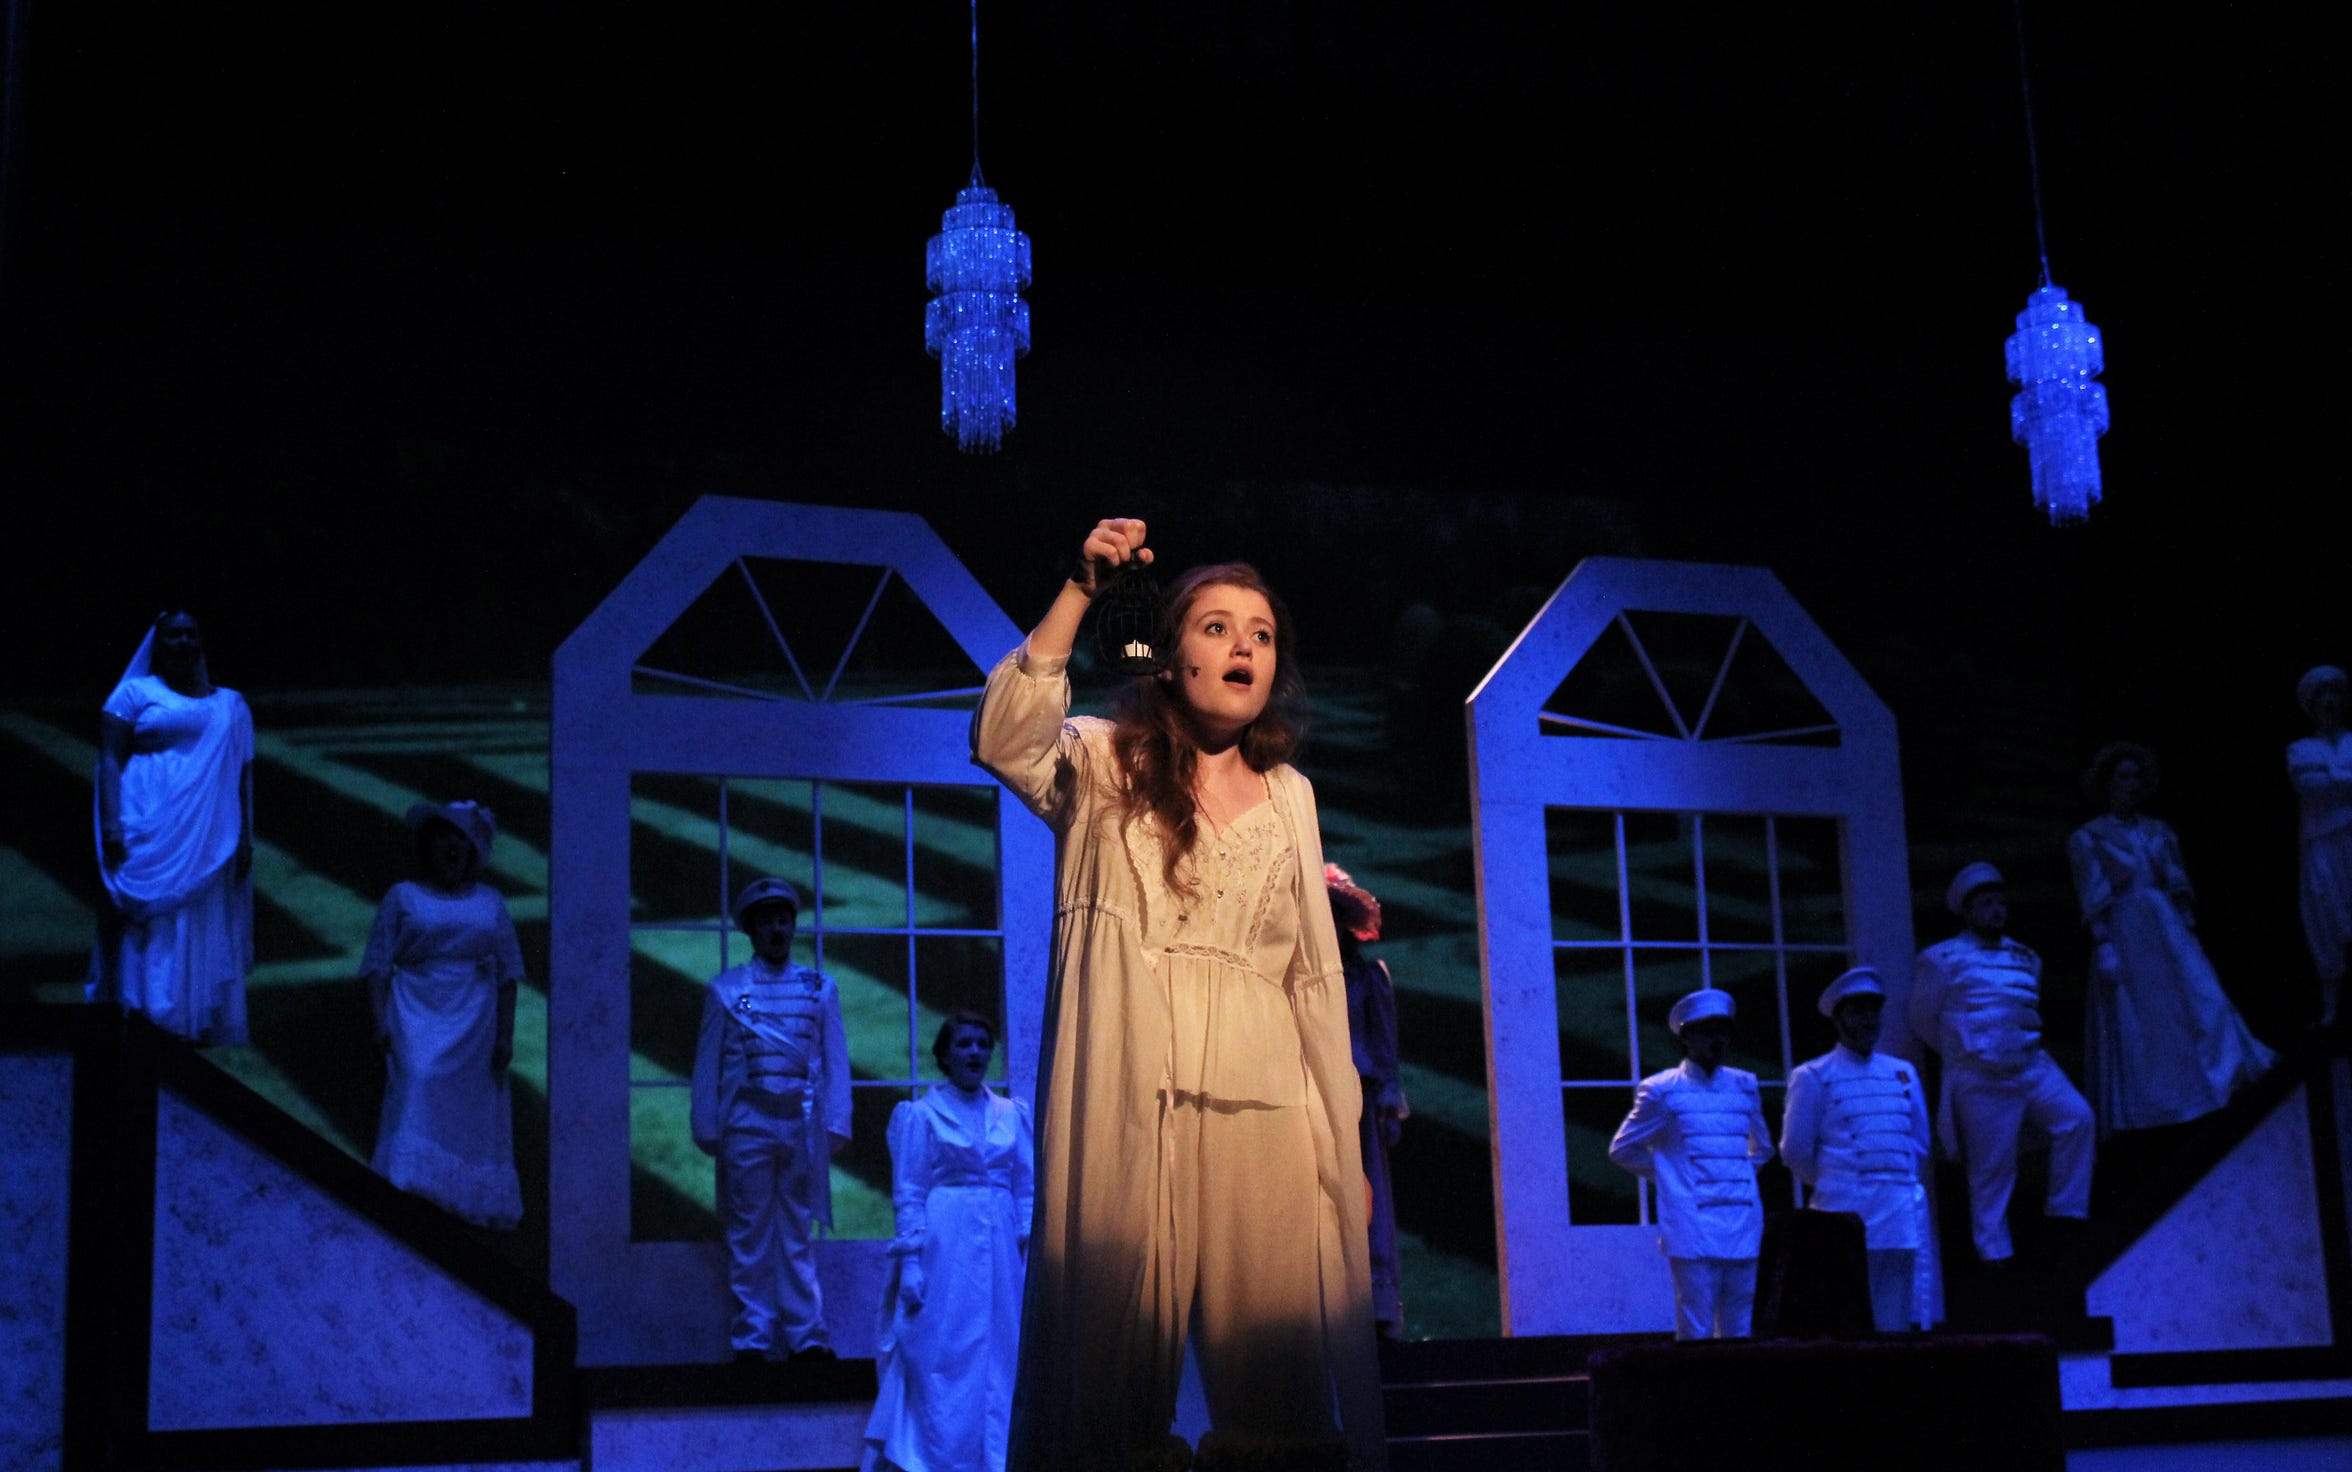 """Mary (Maddie Lowry) searches the mansion for the source of the voice she hears in the night in this rehearsal scene from """"The Secret Garden,"""" Hardin-Simmons University's musical that's on stage through Sunday. Lowry, a Wylie High grad, is sharing the lead role of Mary with Shelby Walker, a Cooper High grad."""